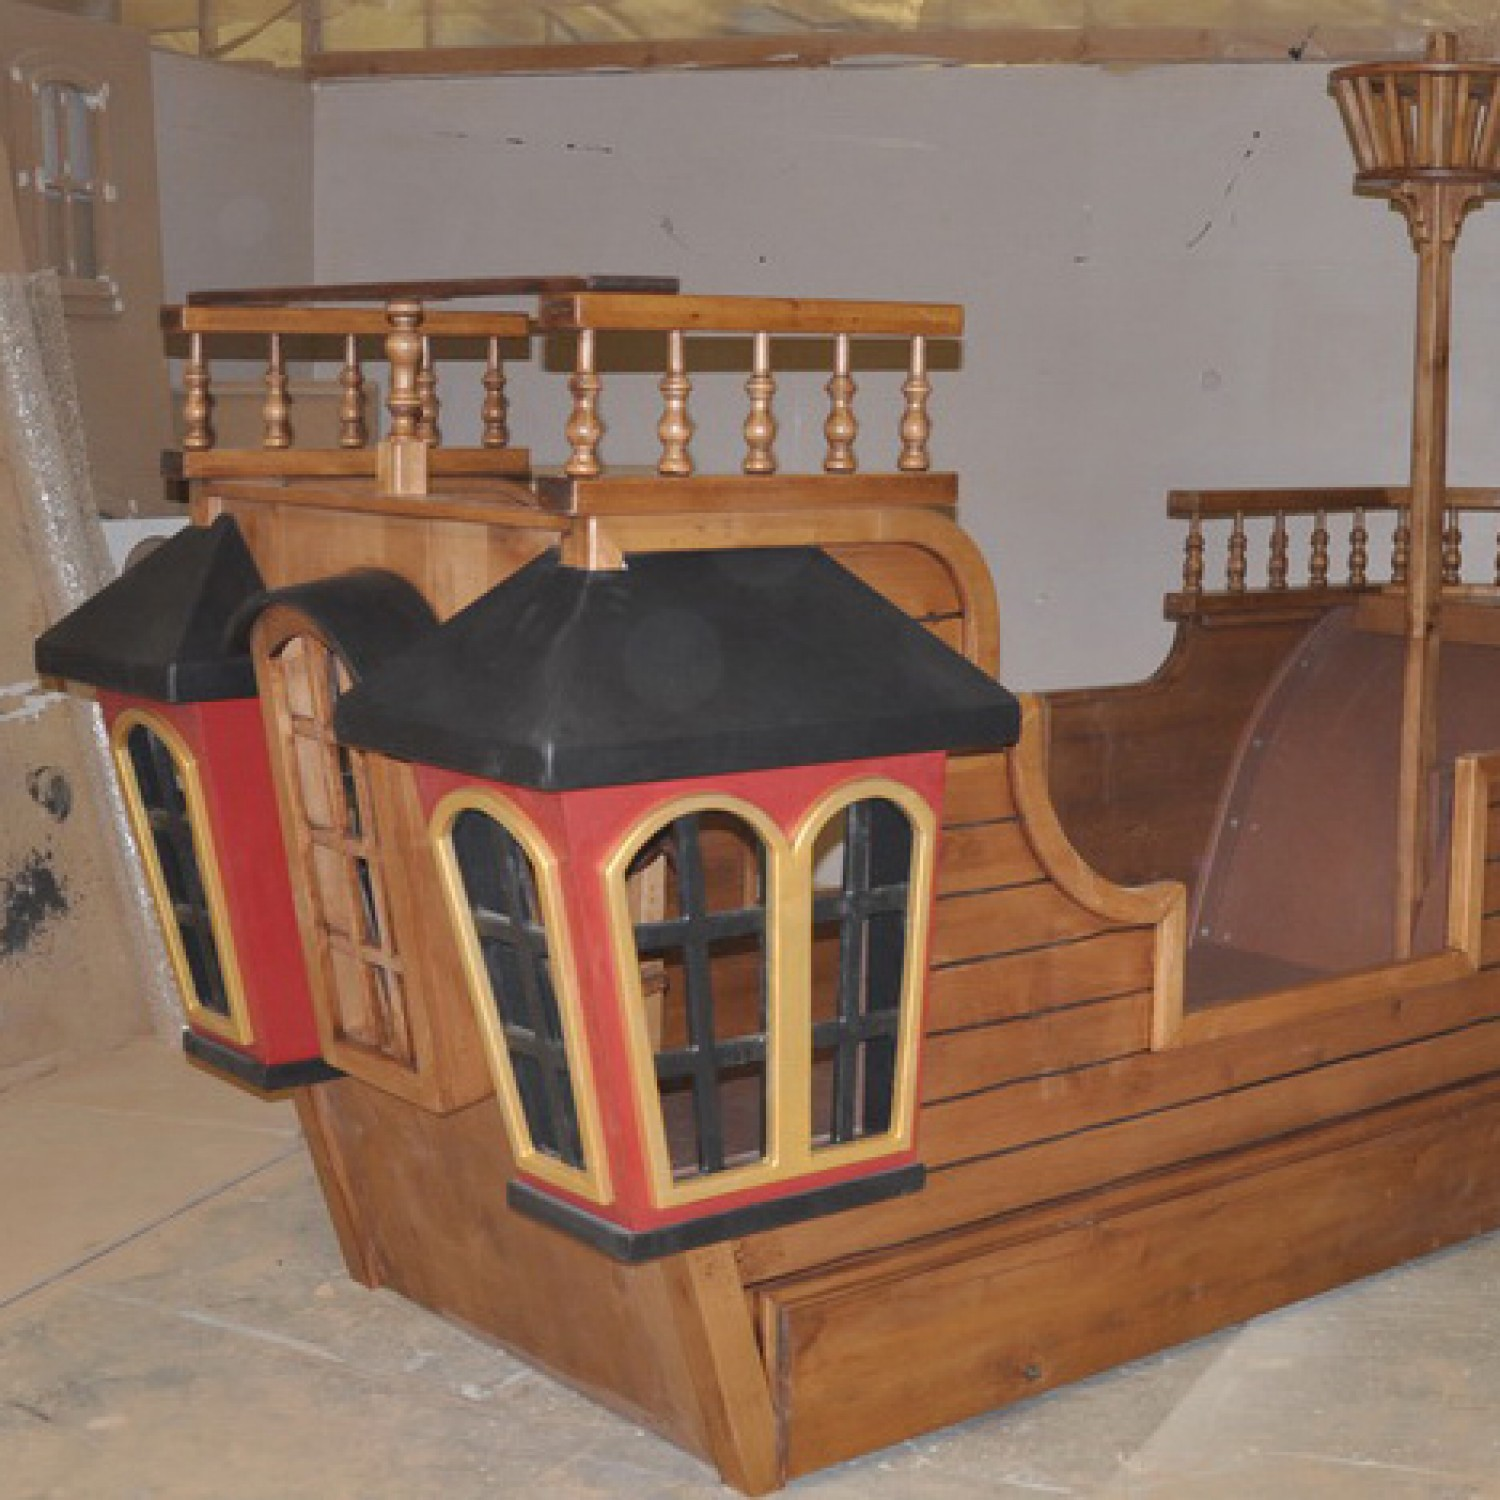 Pirate Ship Bed Plans | BED PLANS DIY & BLUEPRINTS